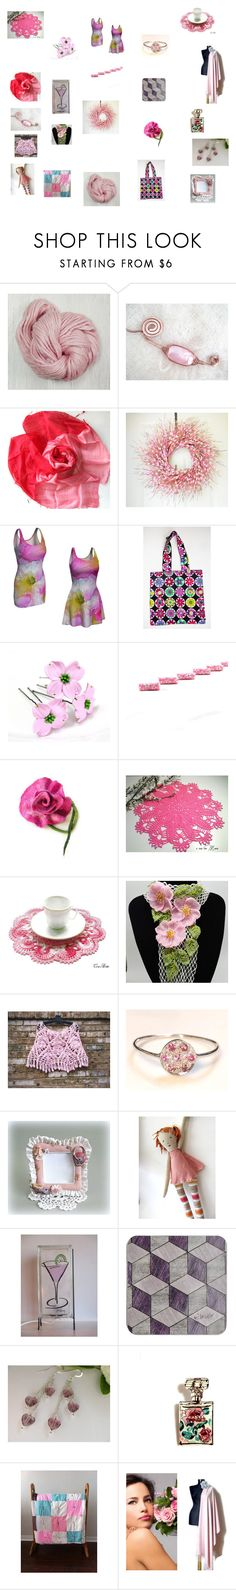 """""""Pink Mauve Gifts for Mums"""" by einder ❤ liked on Polyvore featuring Wild Rose and Chanel"""